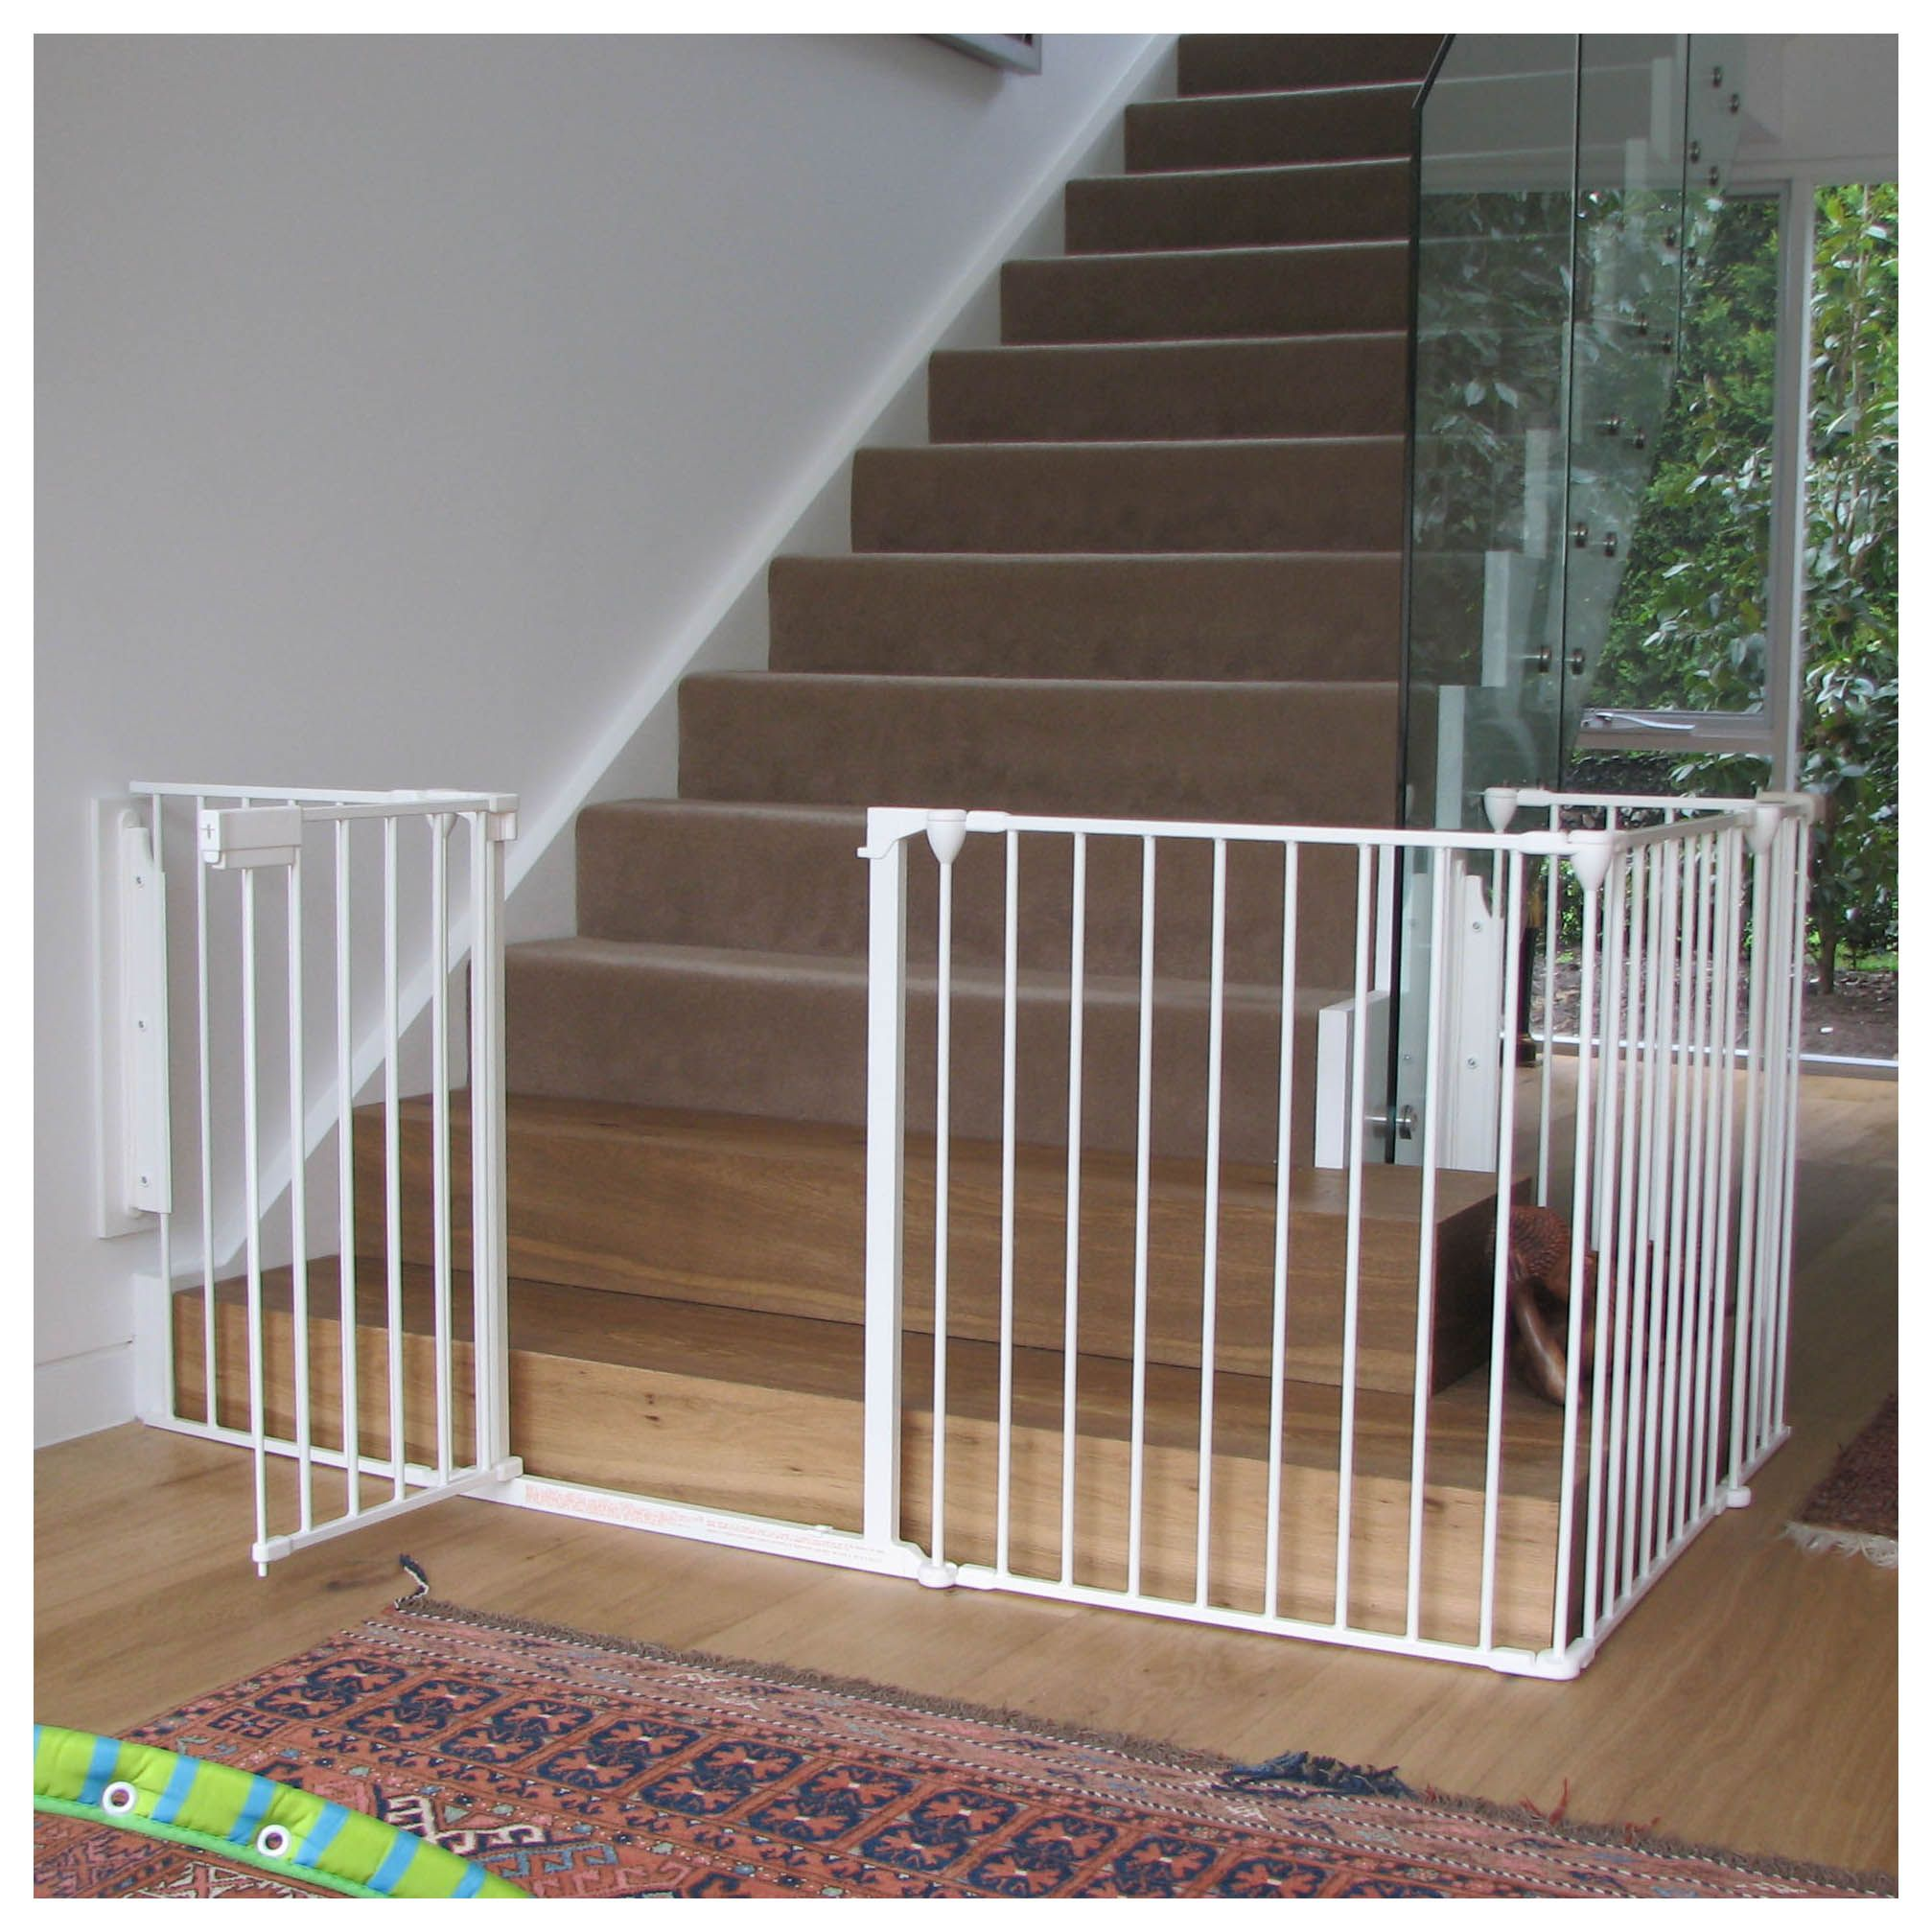 Bust of Good Child Safety Gates For Stairs Diy baby gate